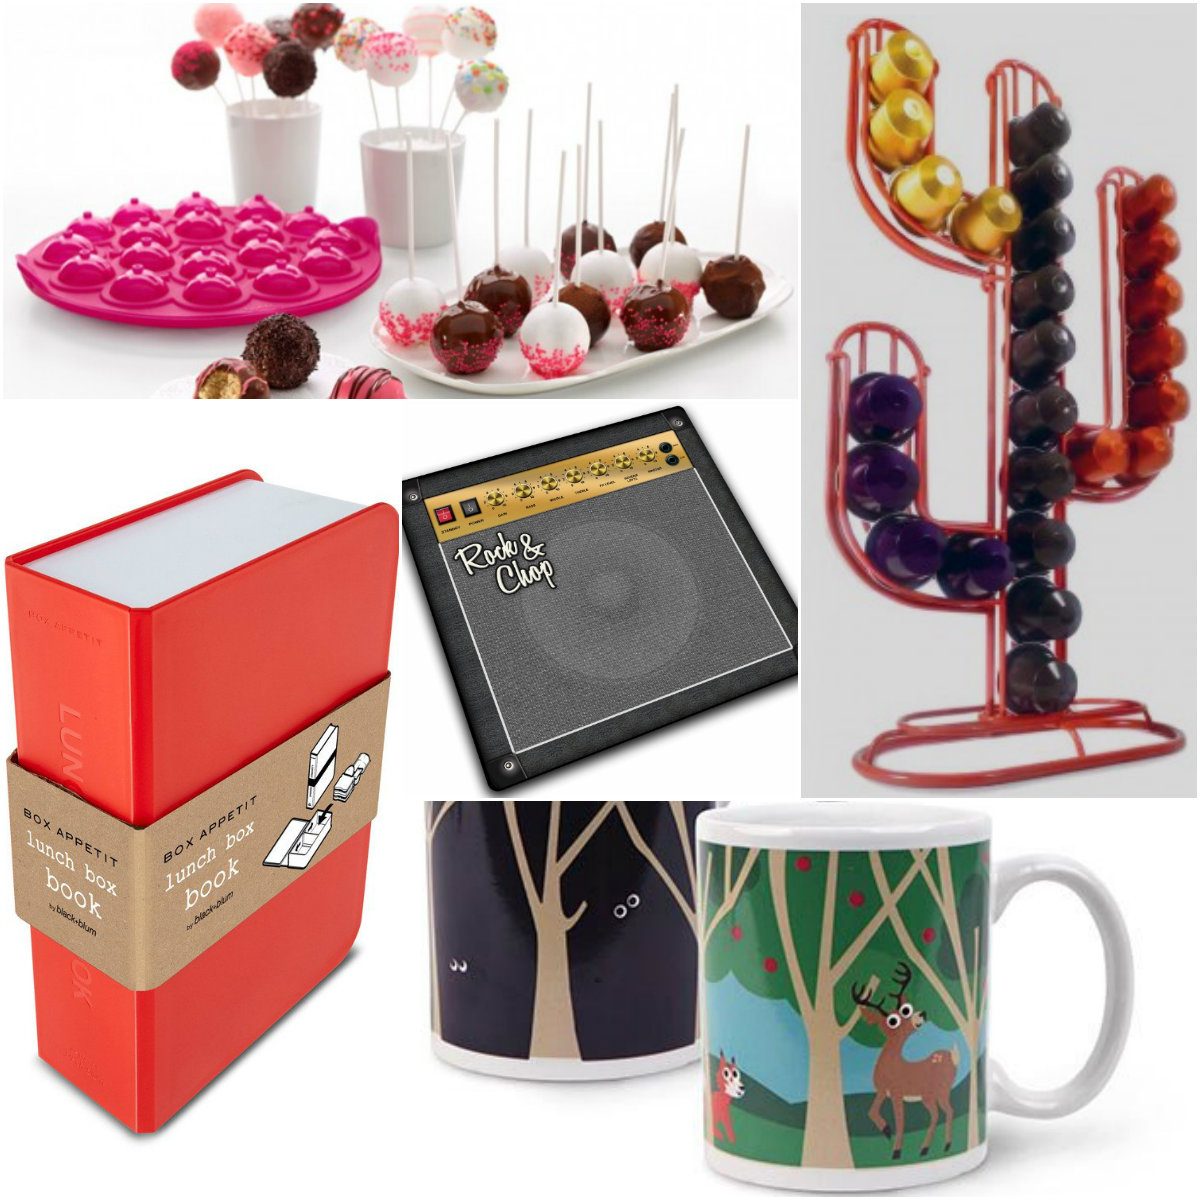 5 Christmas Gifts For Kitchen And Design Lovers Modern